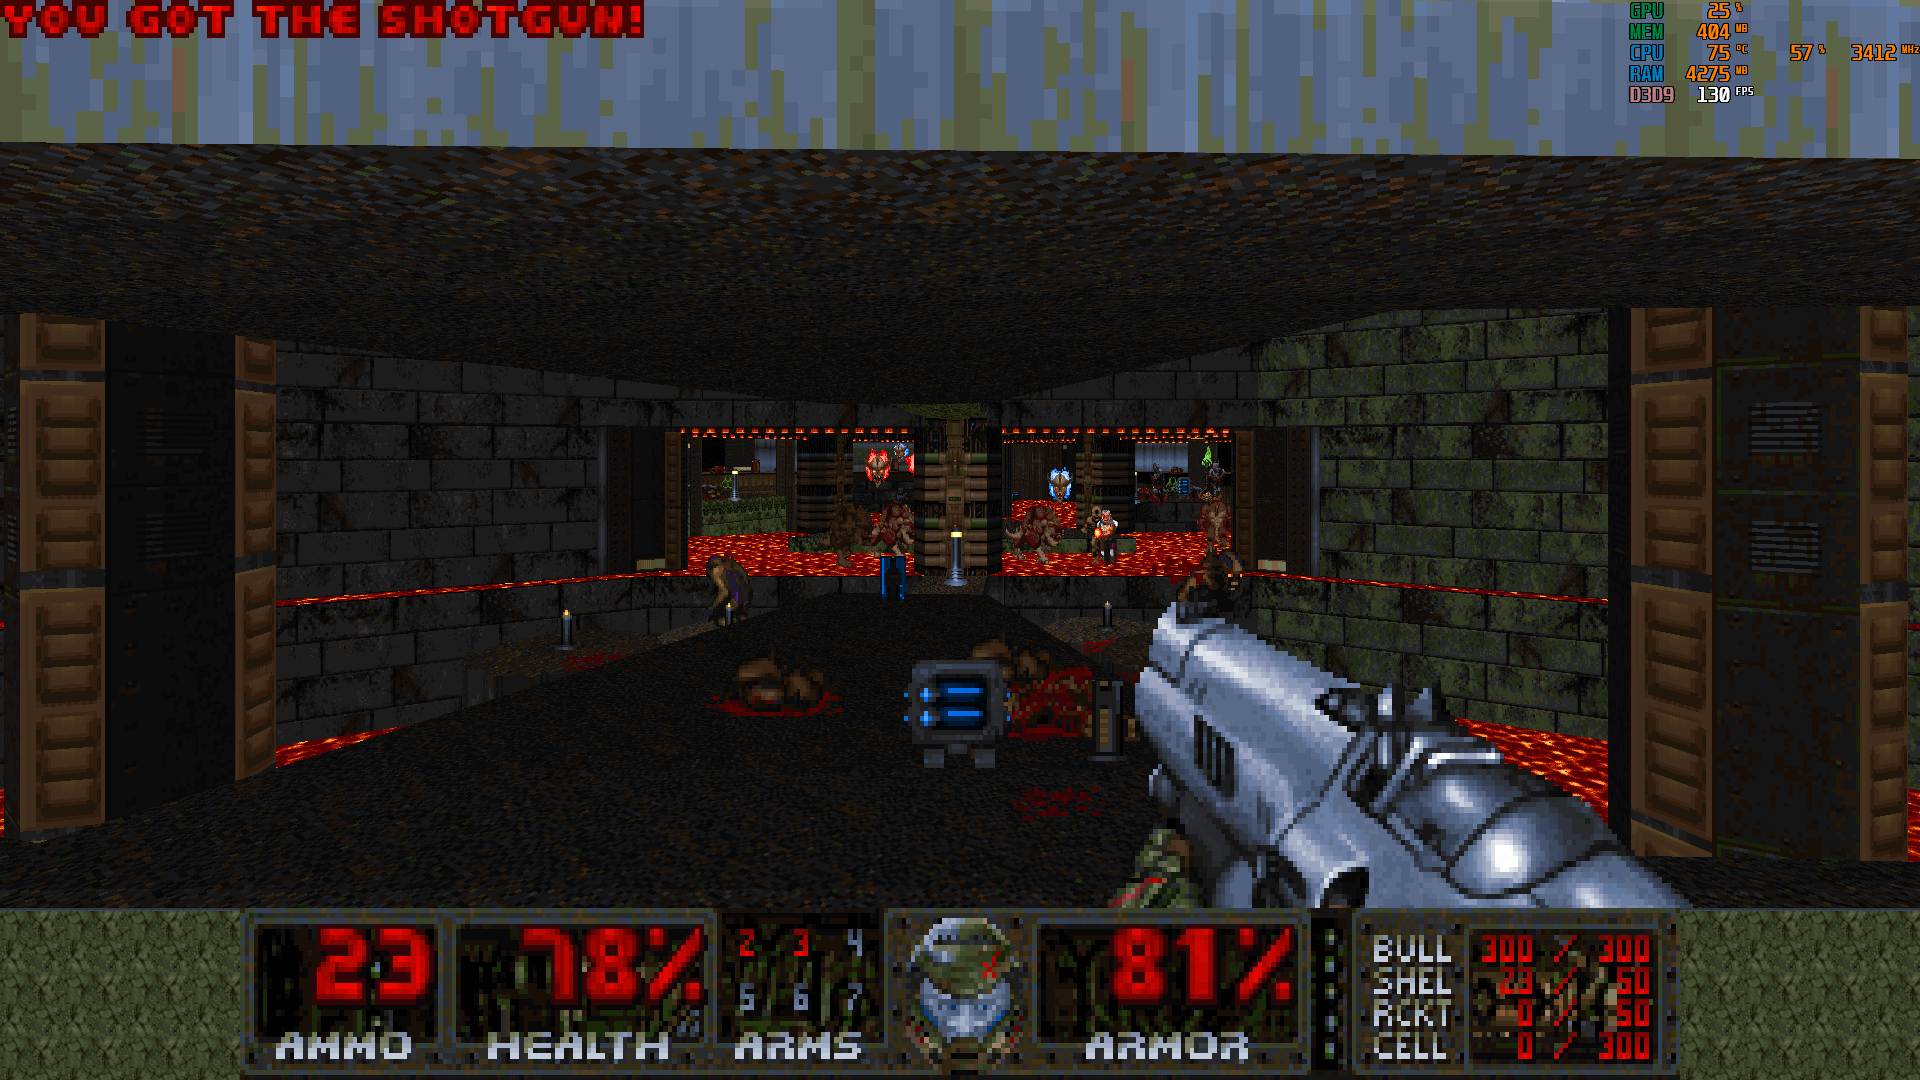 doom06.png.31bf7e9eb4a8382515938aed940878ed.png